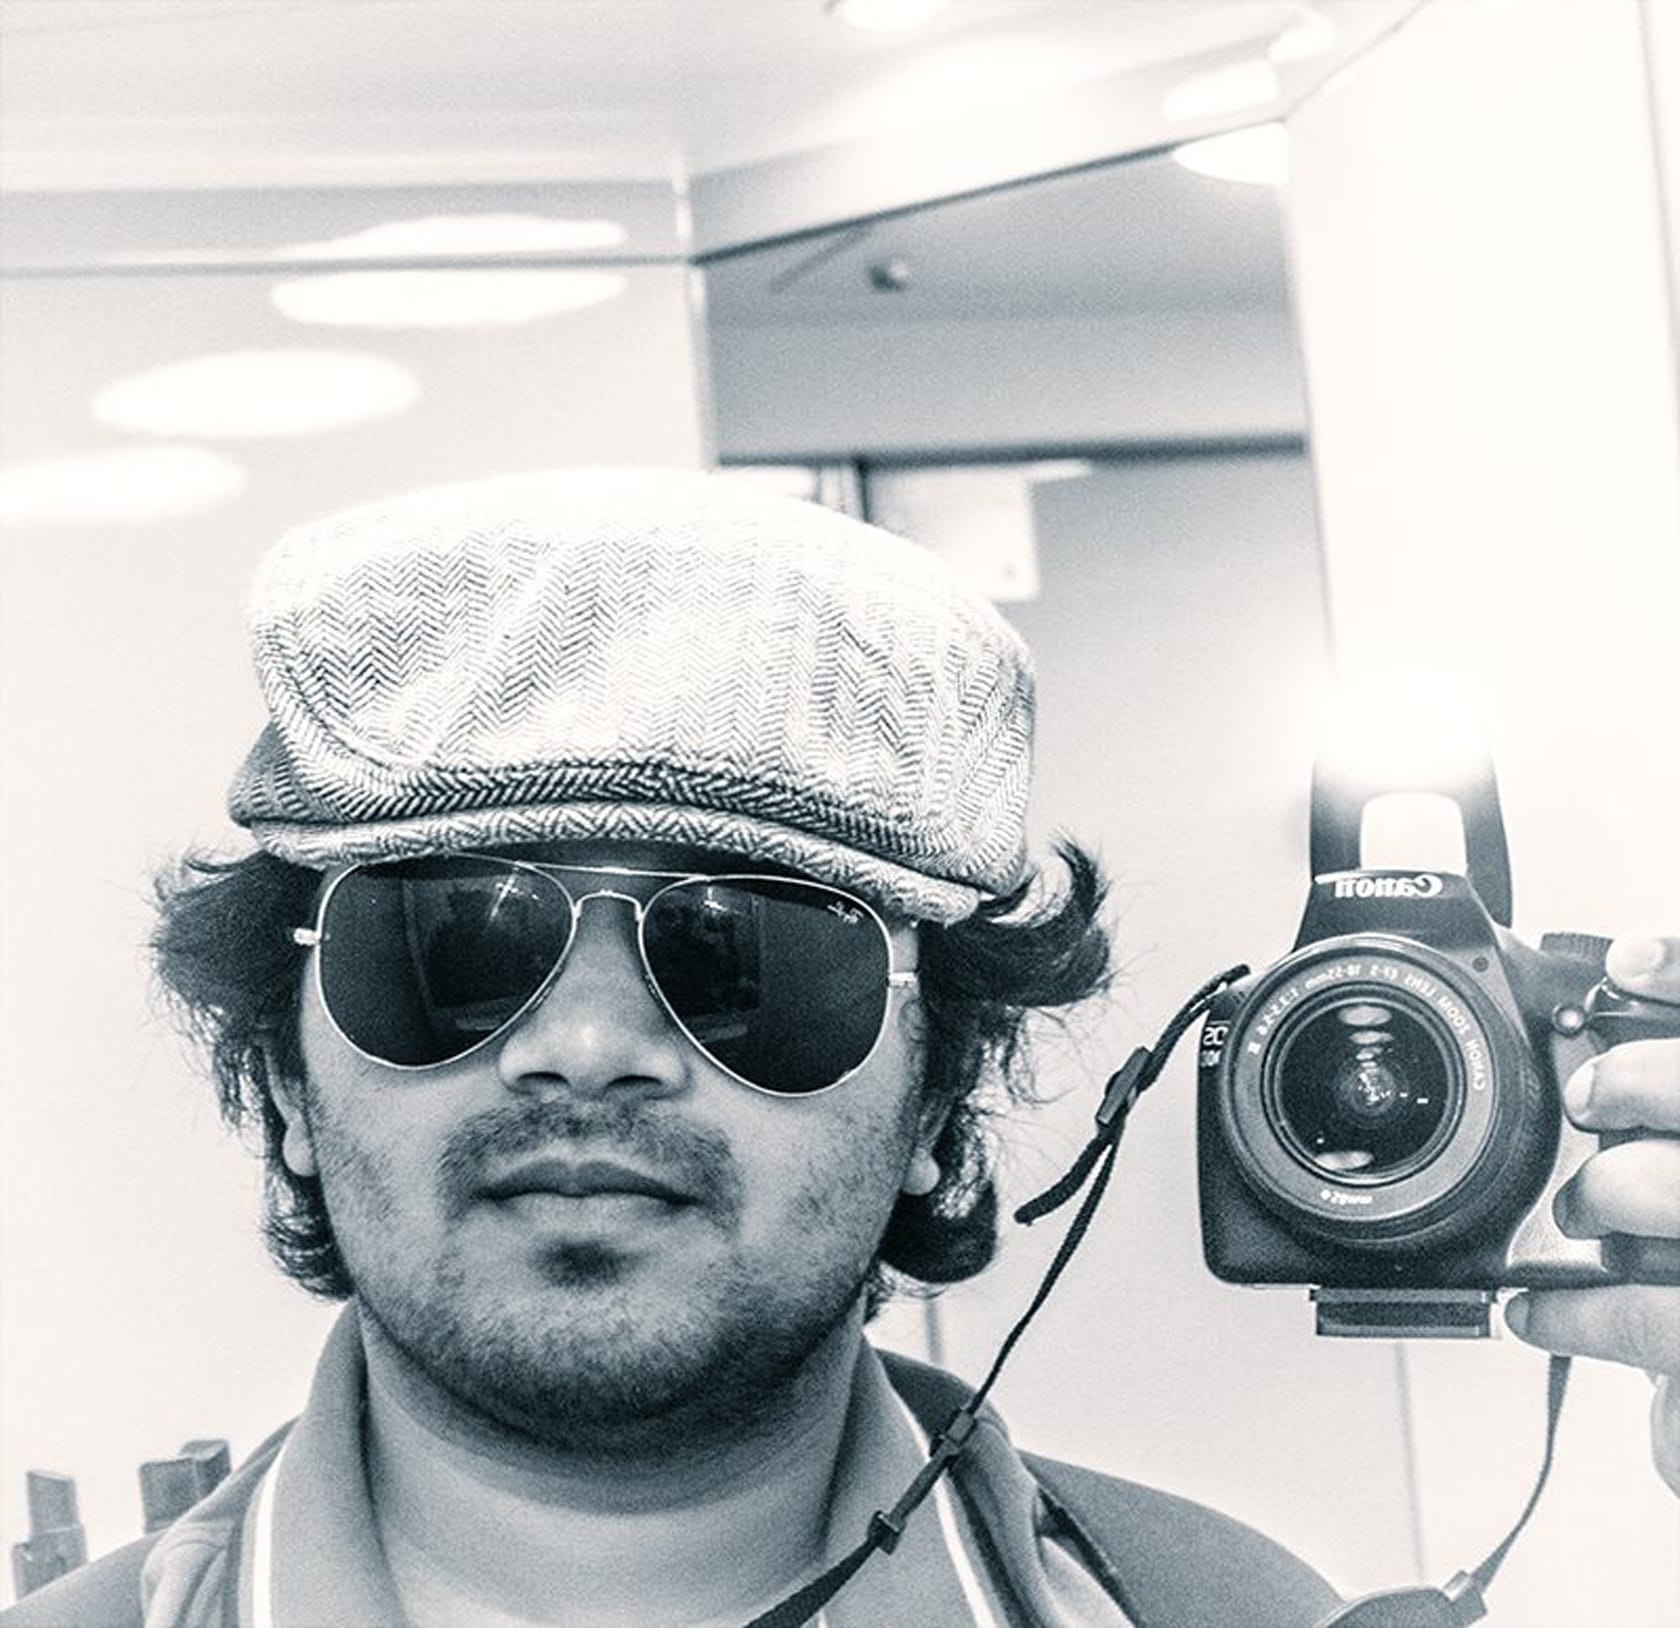 Sreejith Kaviyil street photographer